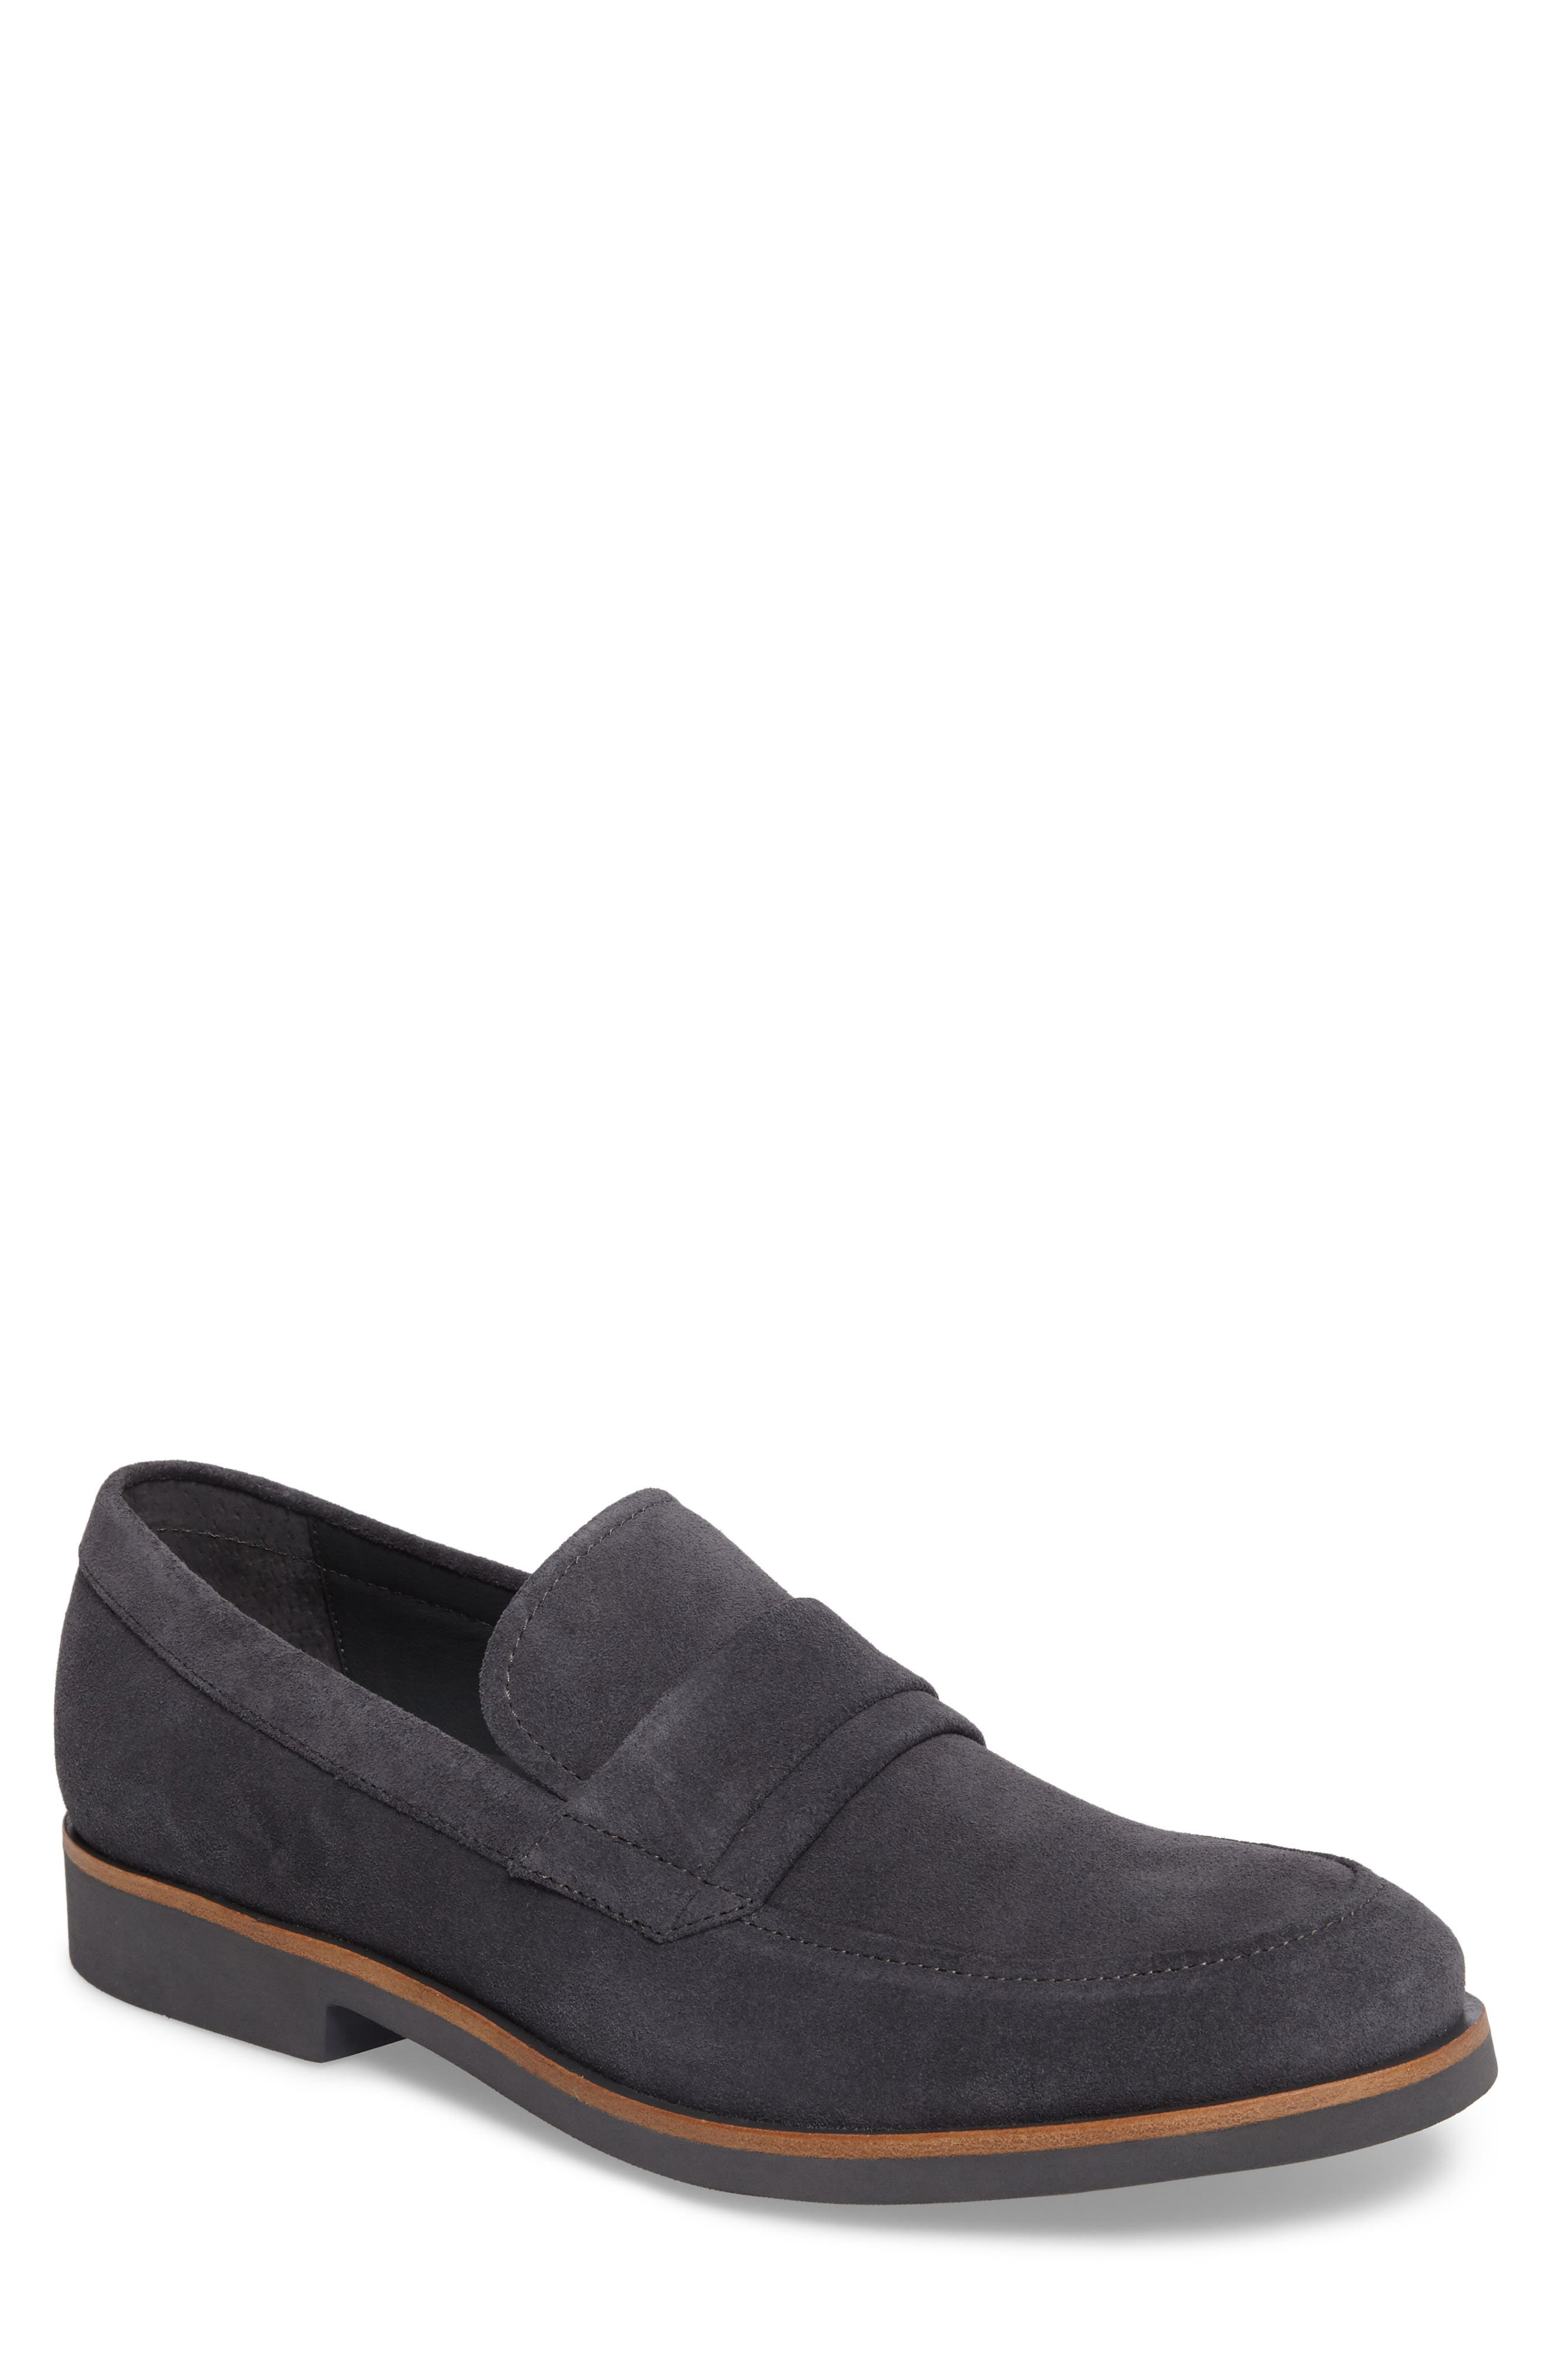 Forbes Loafer,                             Main thumbnail 1, color,                             020